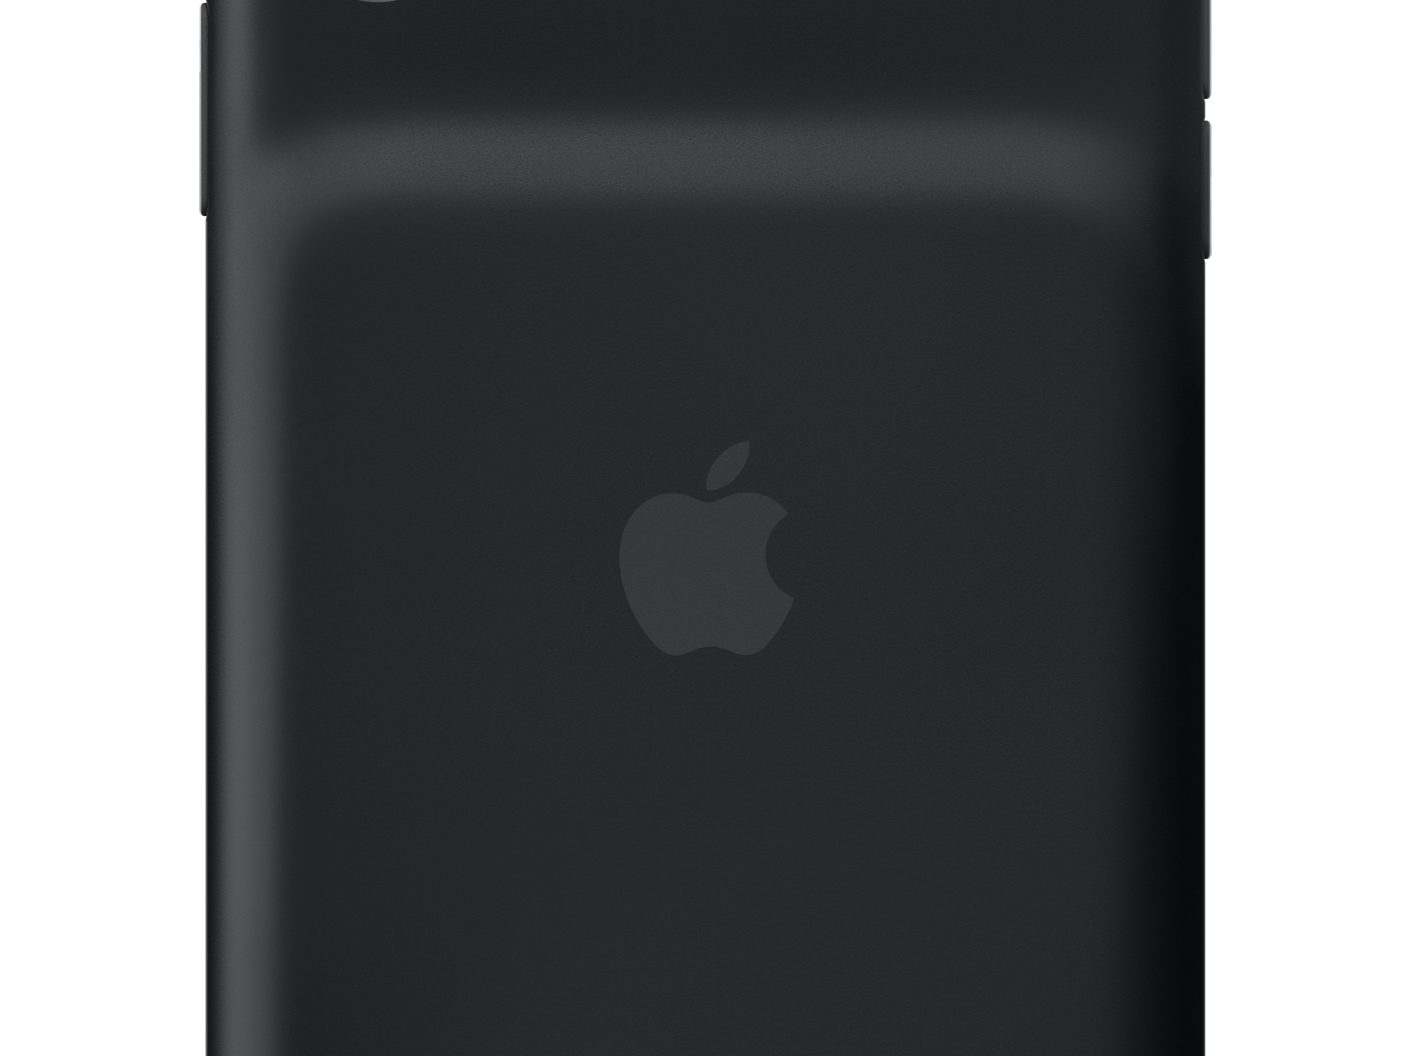 Apple is selling a new battery case for its latest iPhones... for $129